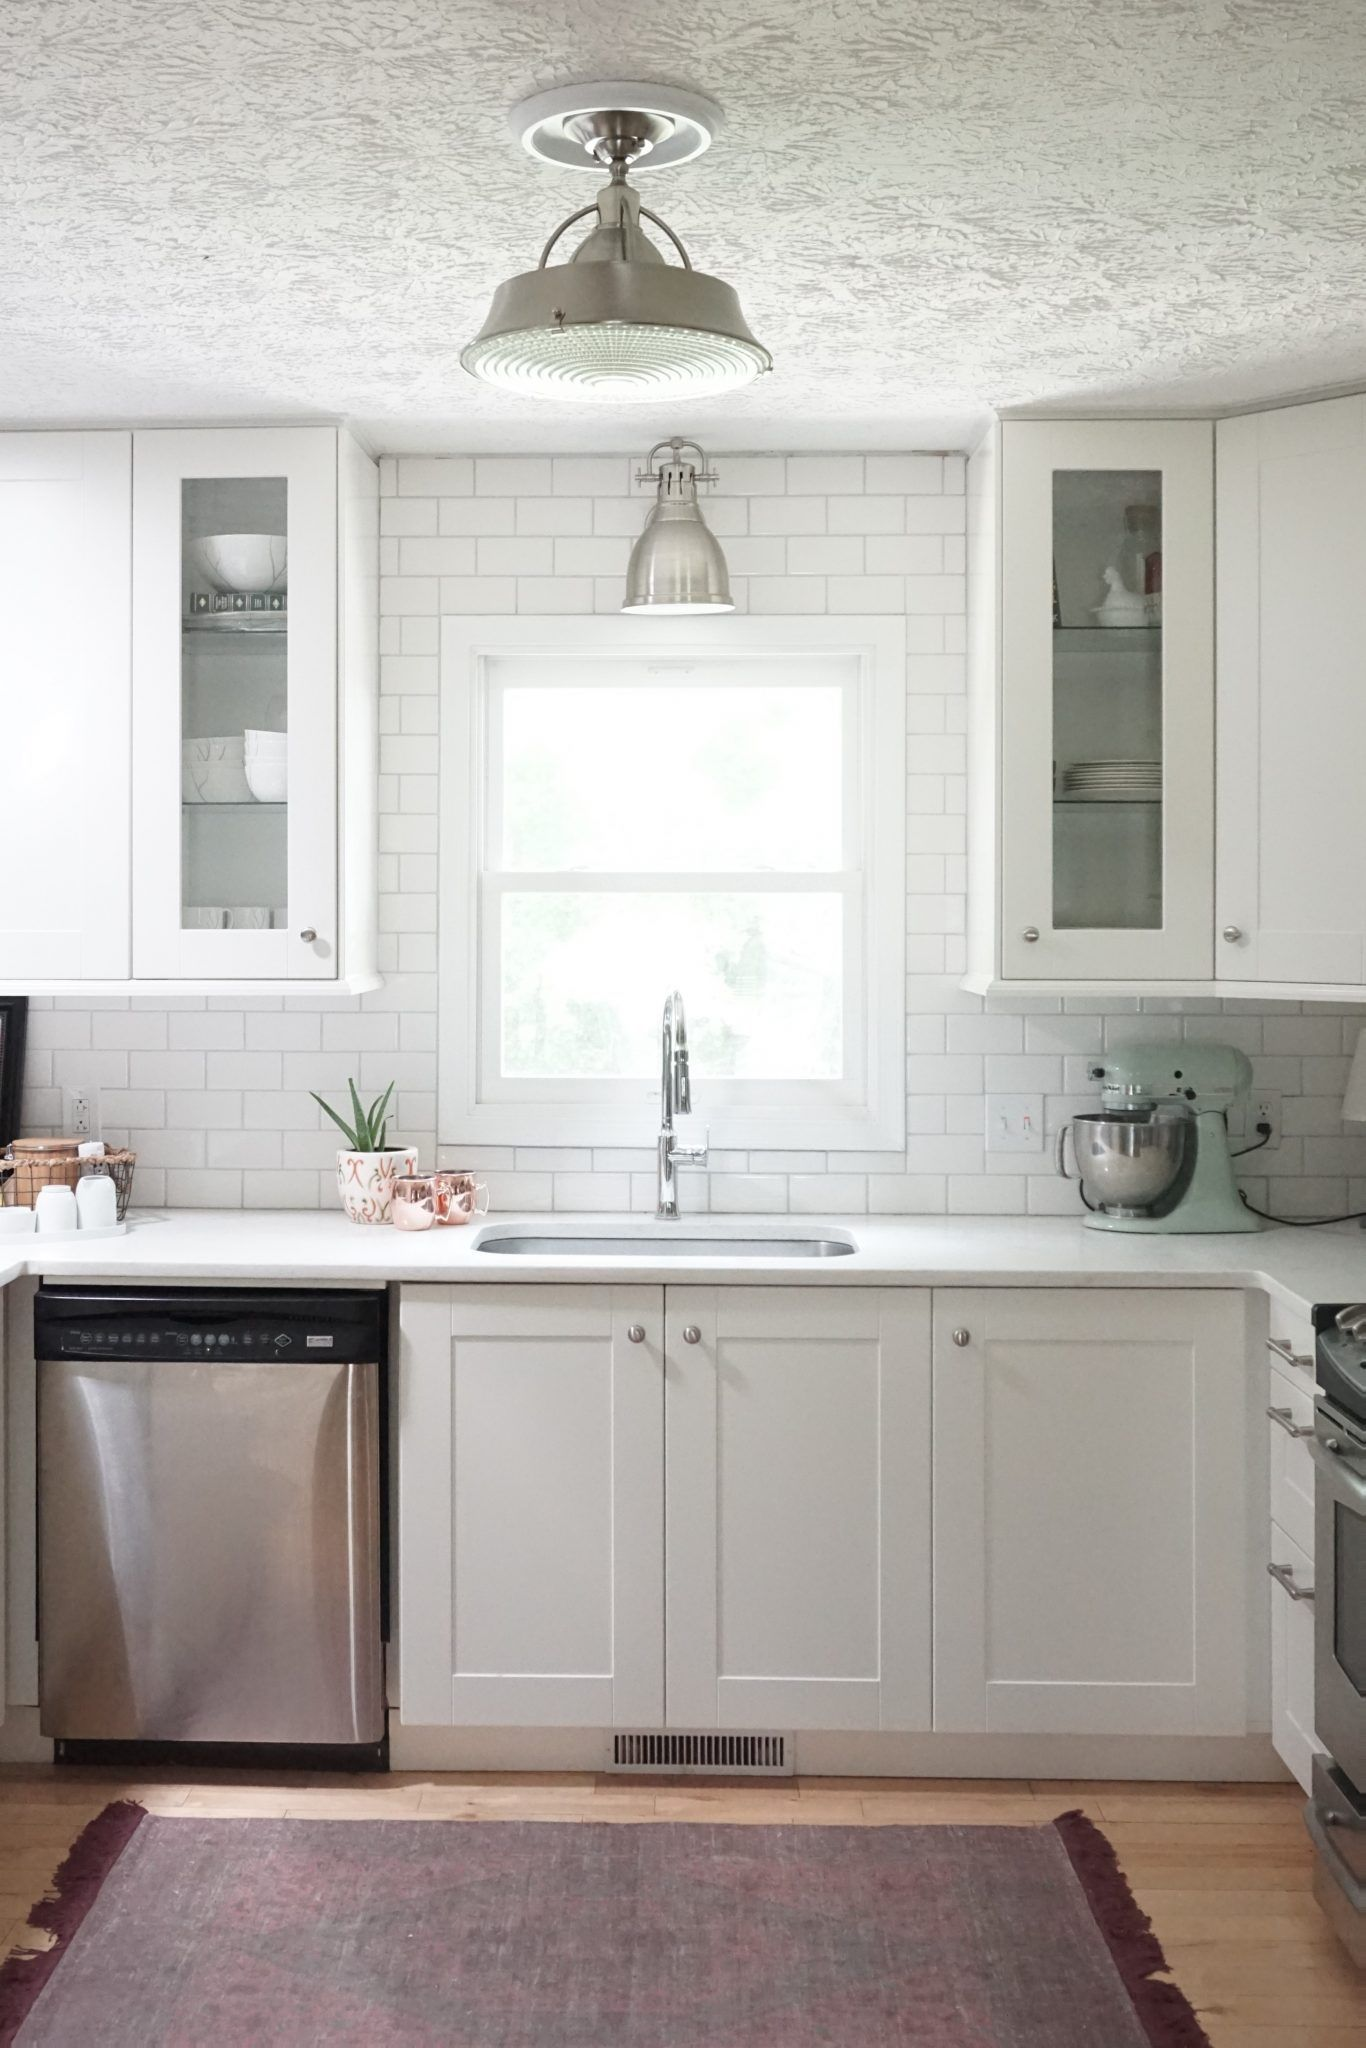 Ikea Sektion Kitchen Review 1 Year Later Forrester Home In 2020 Inexpensive Kitchen Remodel Ikea Kitchen Installation Ikea Kitchen Cabinets